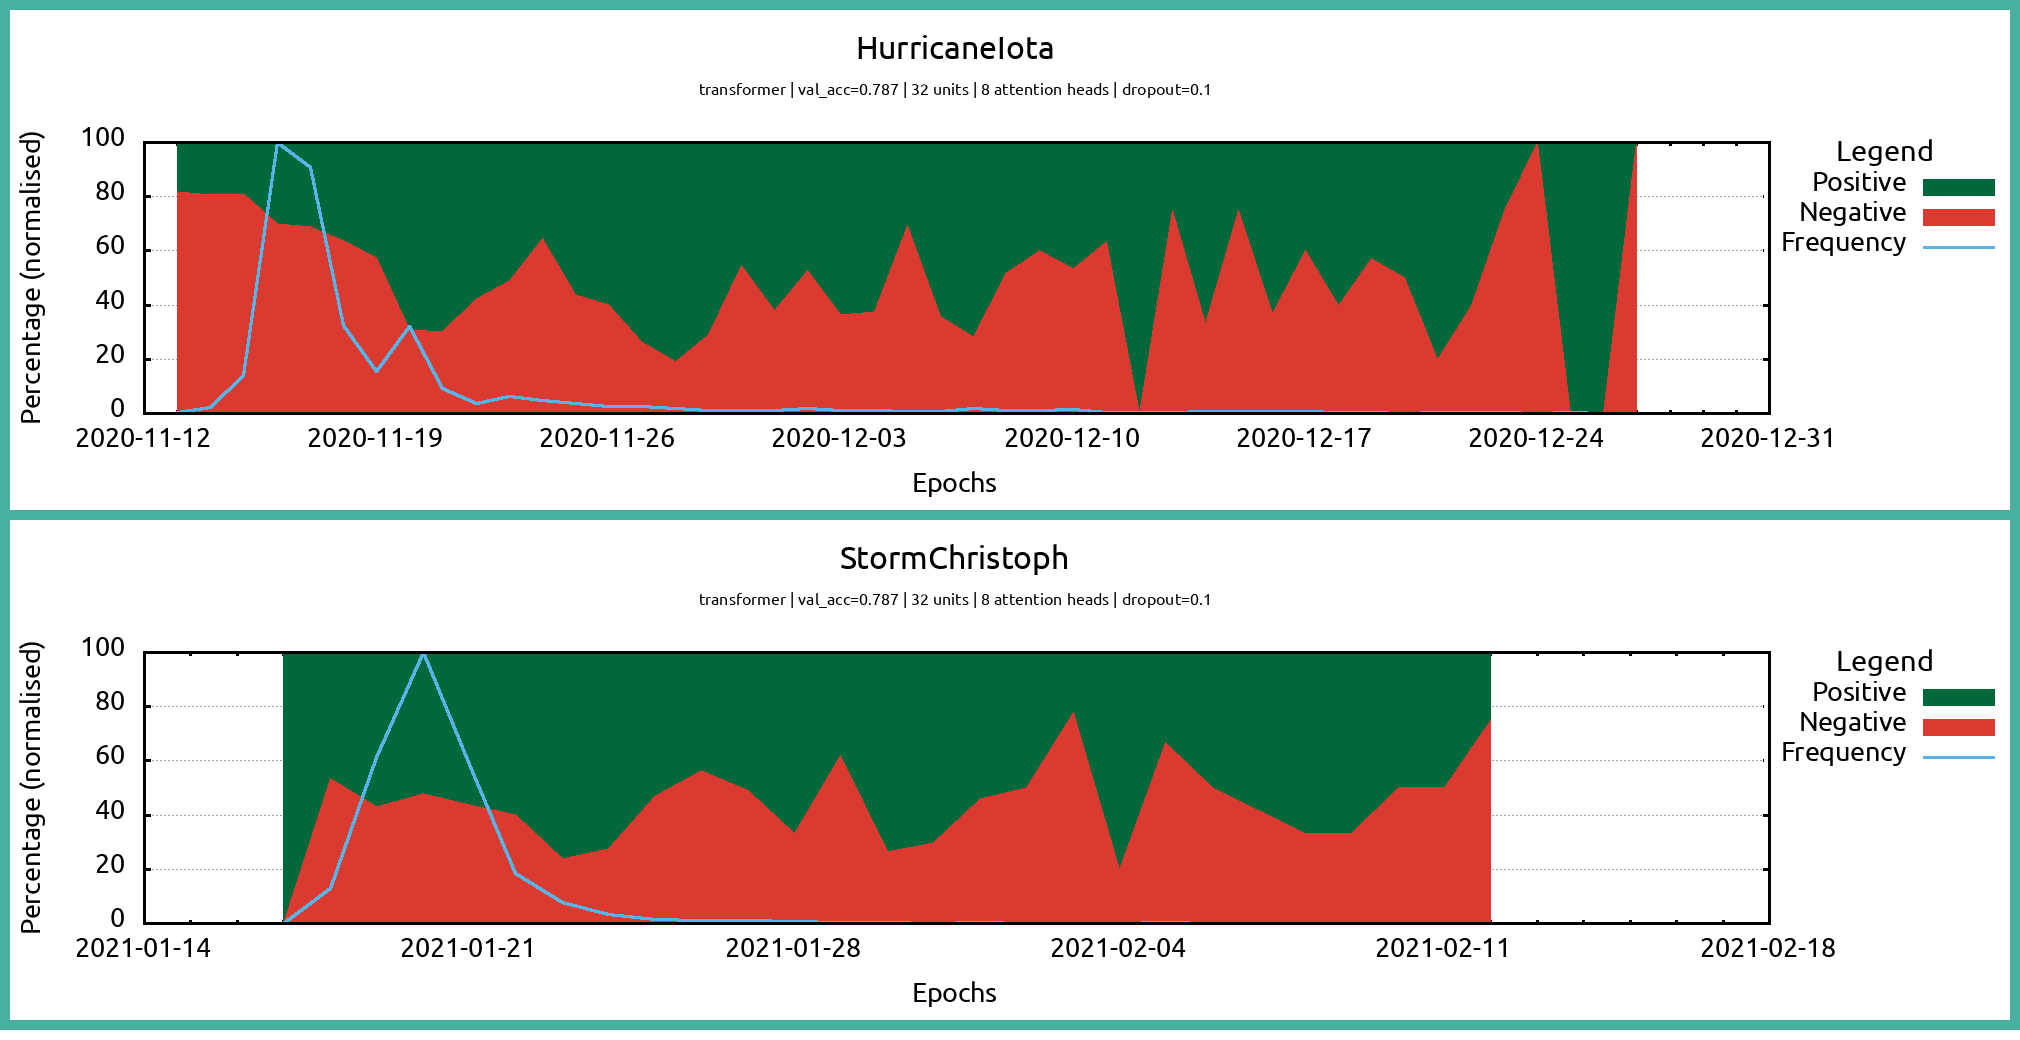 Graph showing the frequency (blue) and sentiment (green and red) of tweets over time